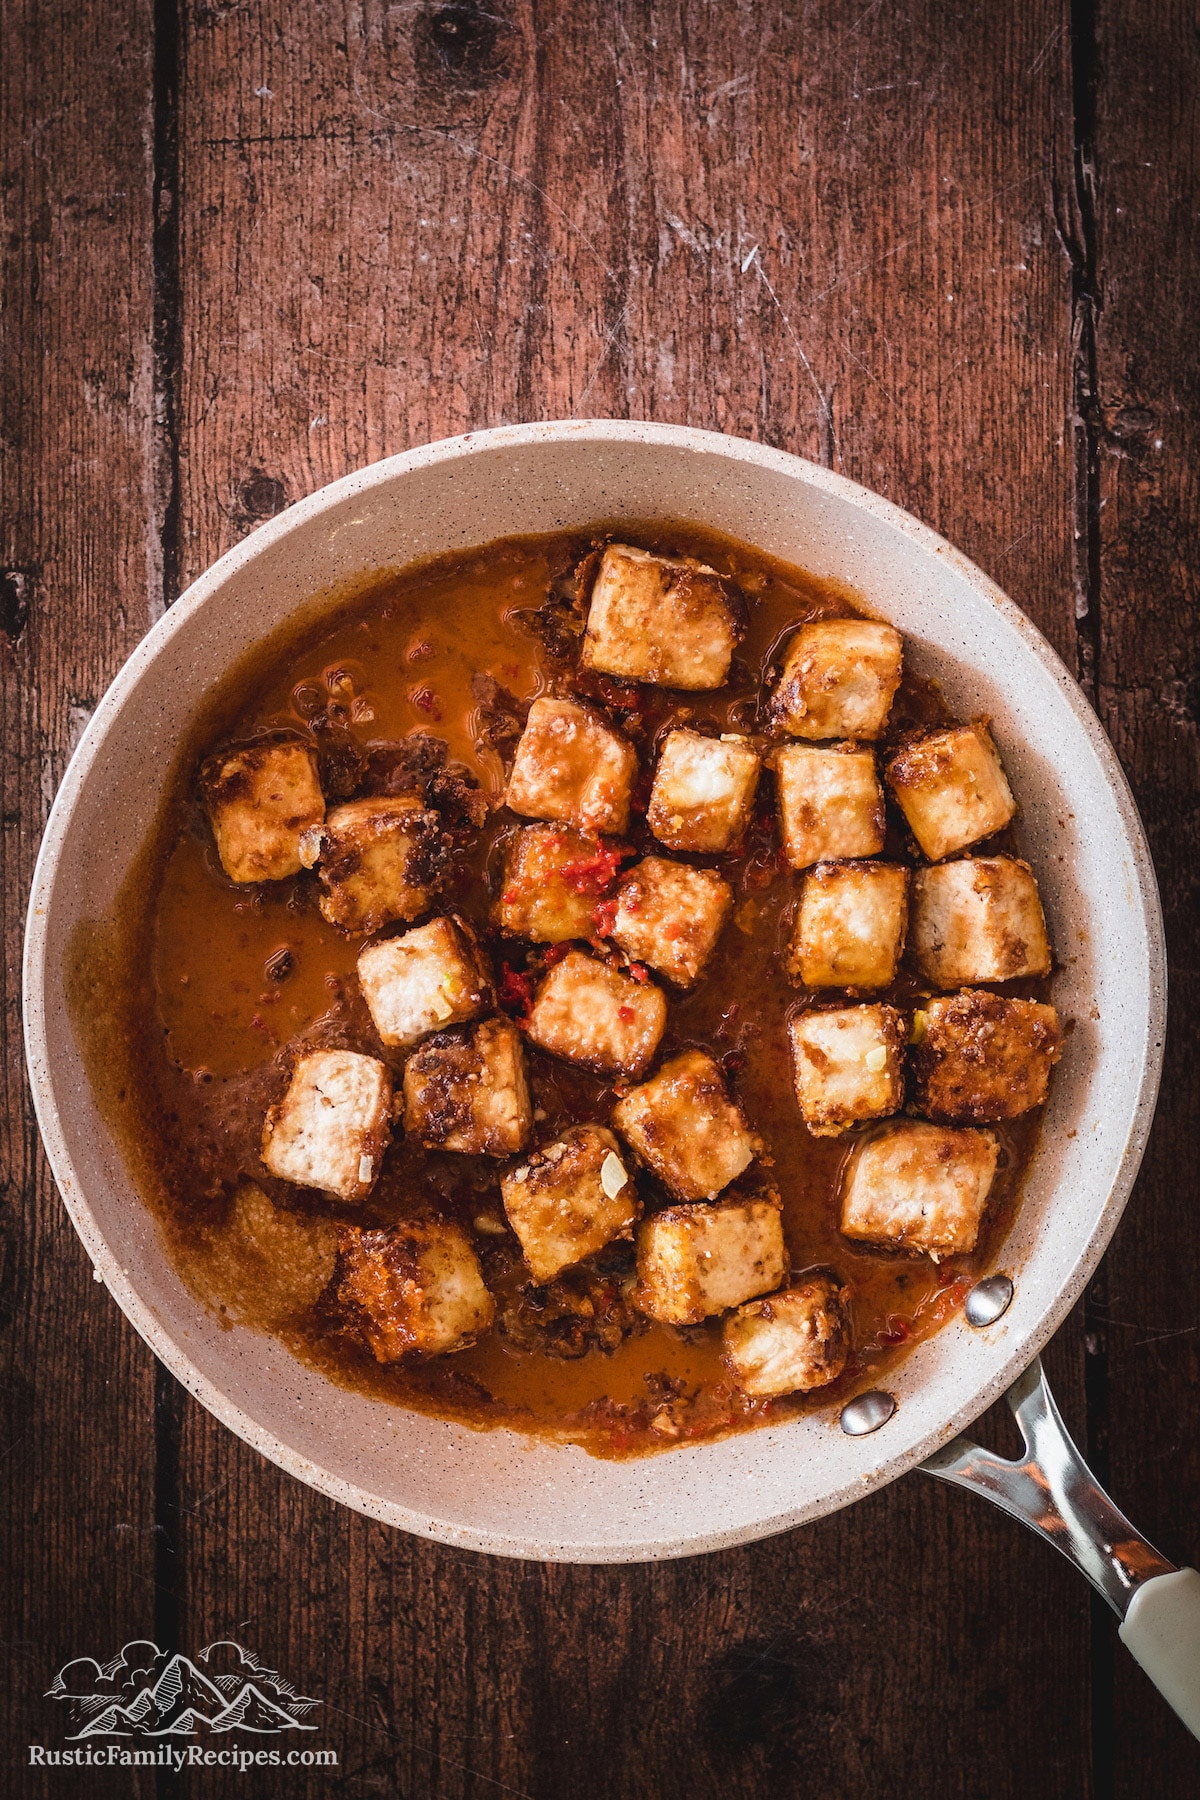 Tofu cubes cooking in skillet with orange sauce